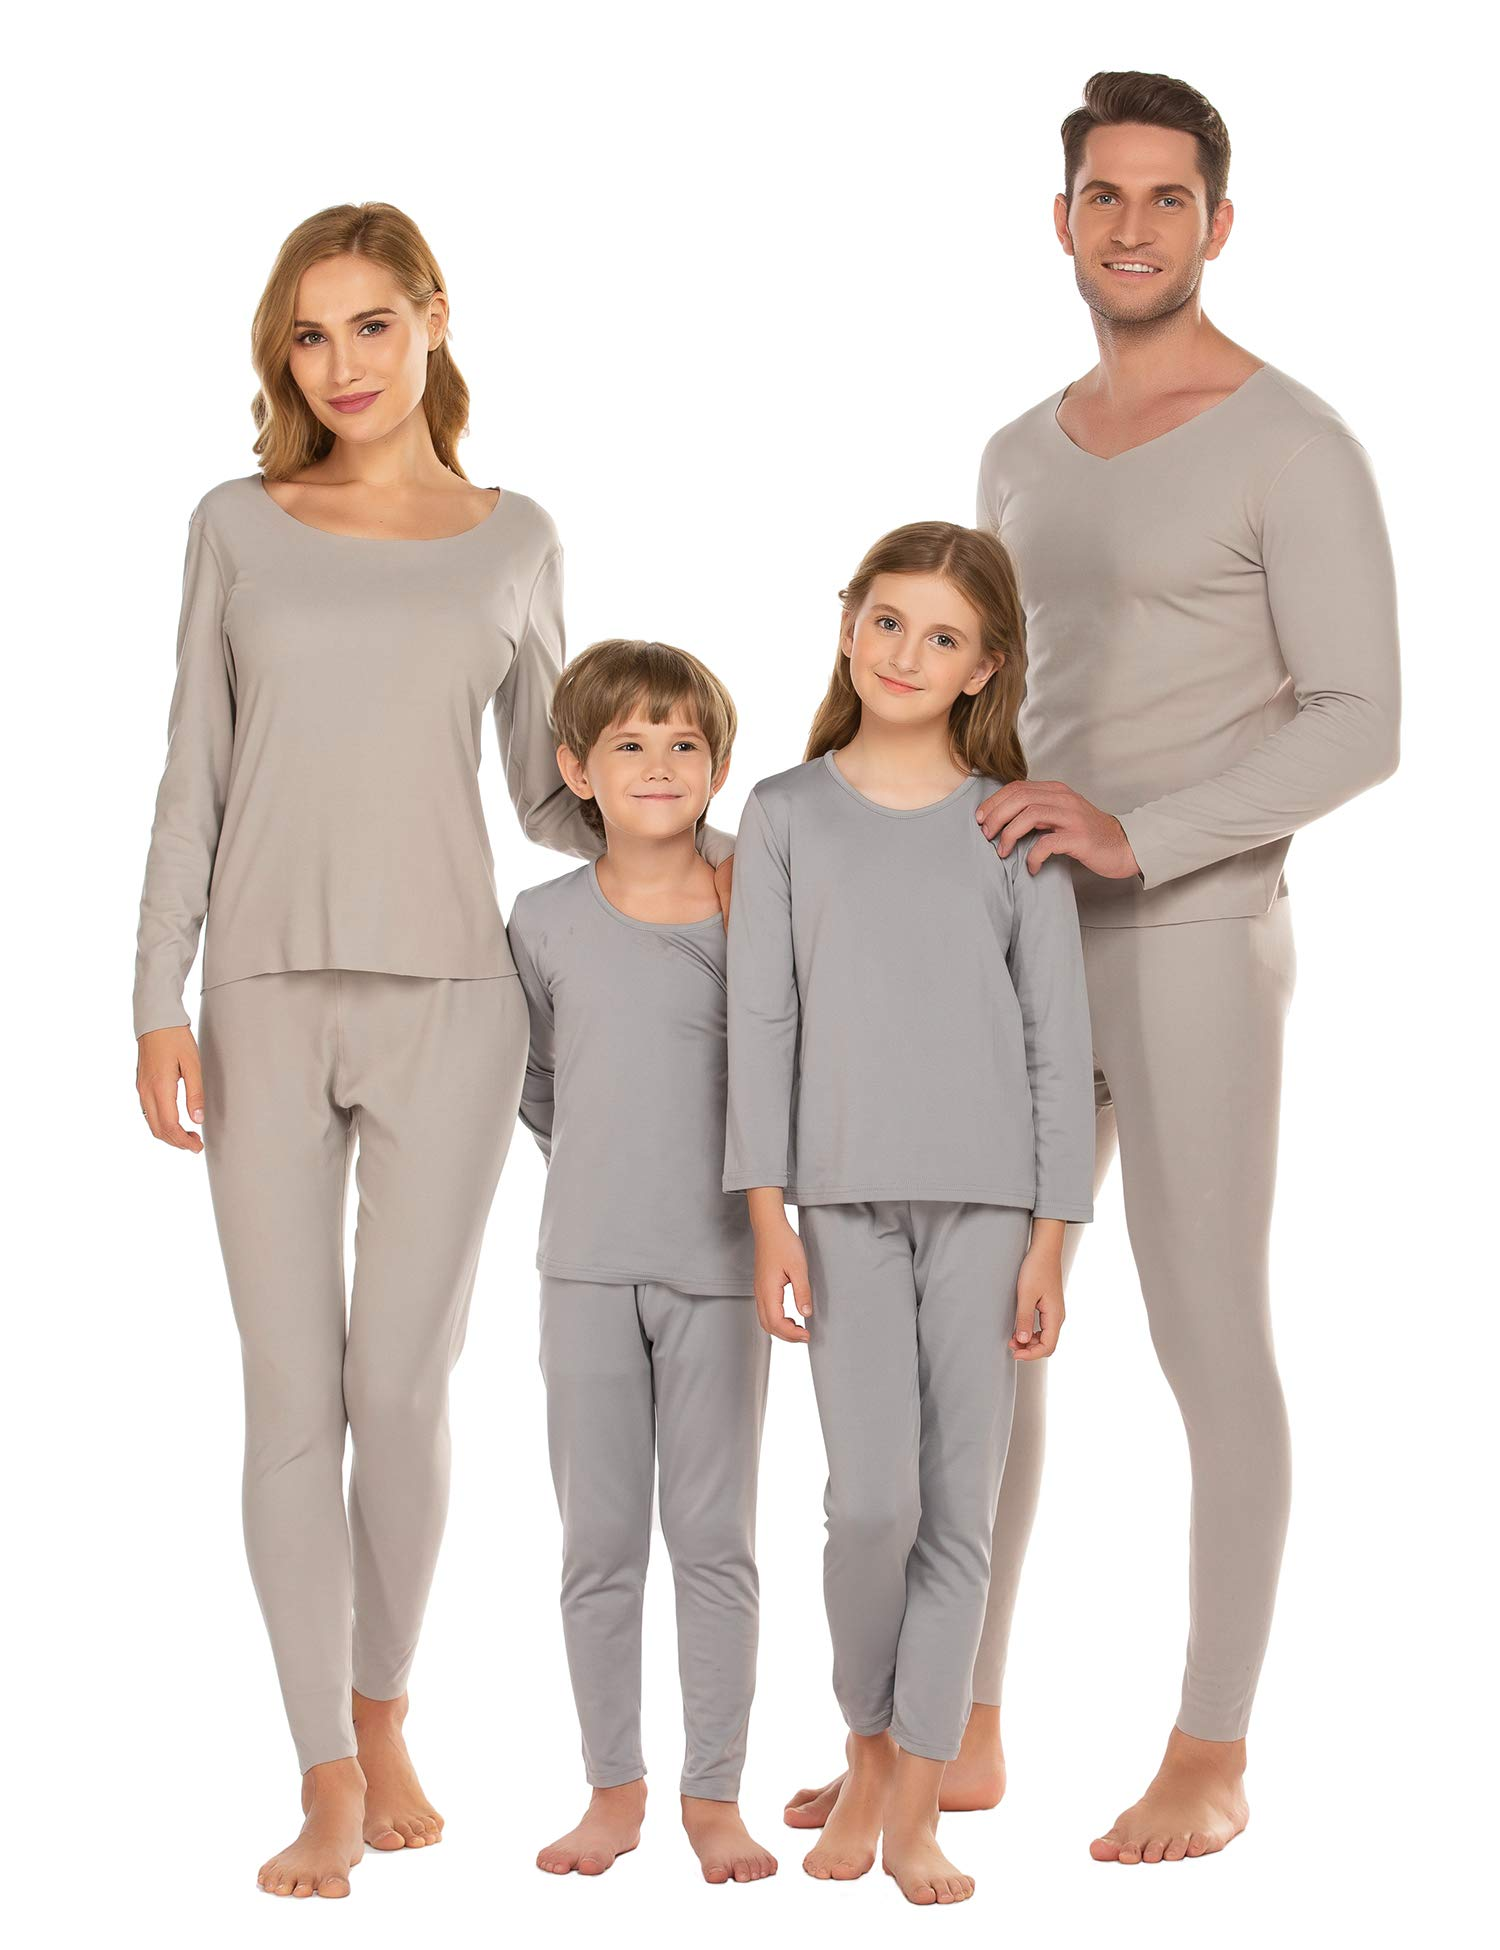 luxilooks Thermal Underwear Mens Cotton Long Johns Set Scoop Neck Top&Pant Pajama Set(Men/Gray,XXL) by luxilooks